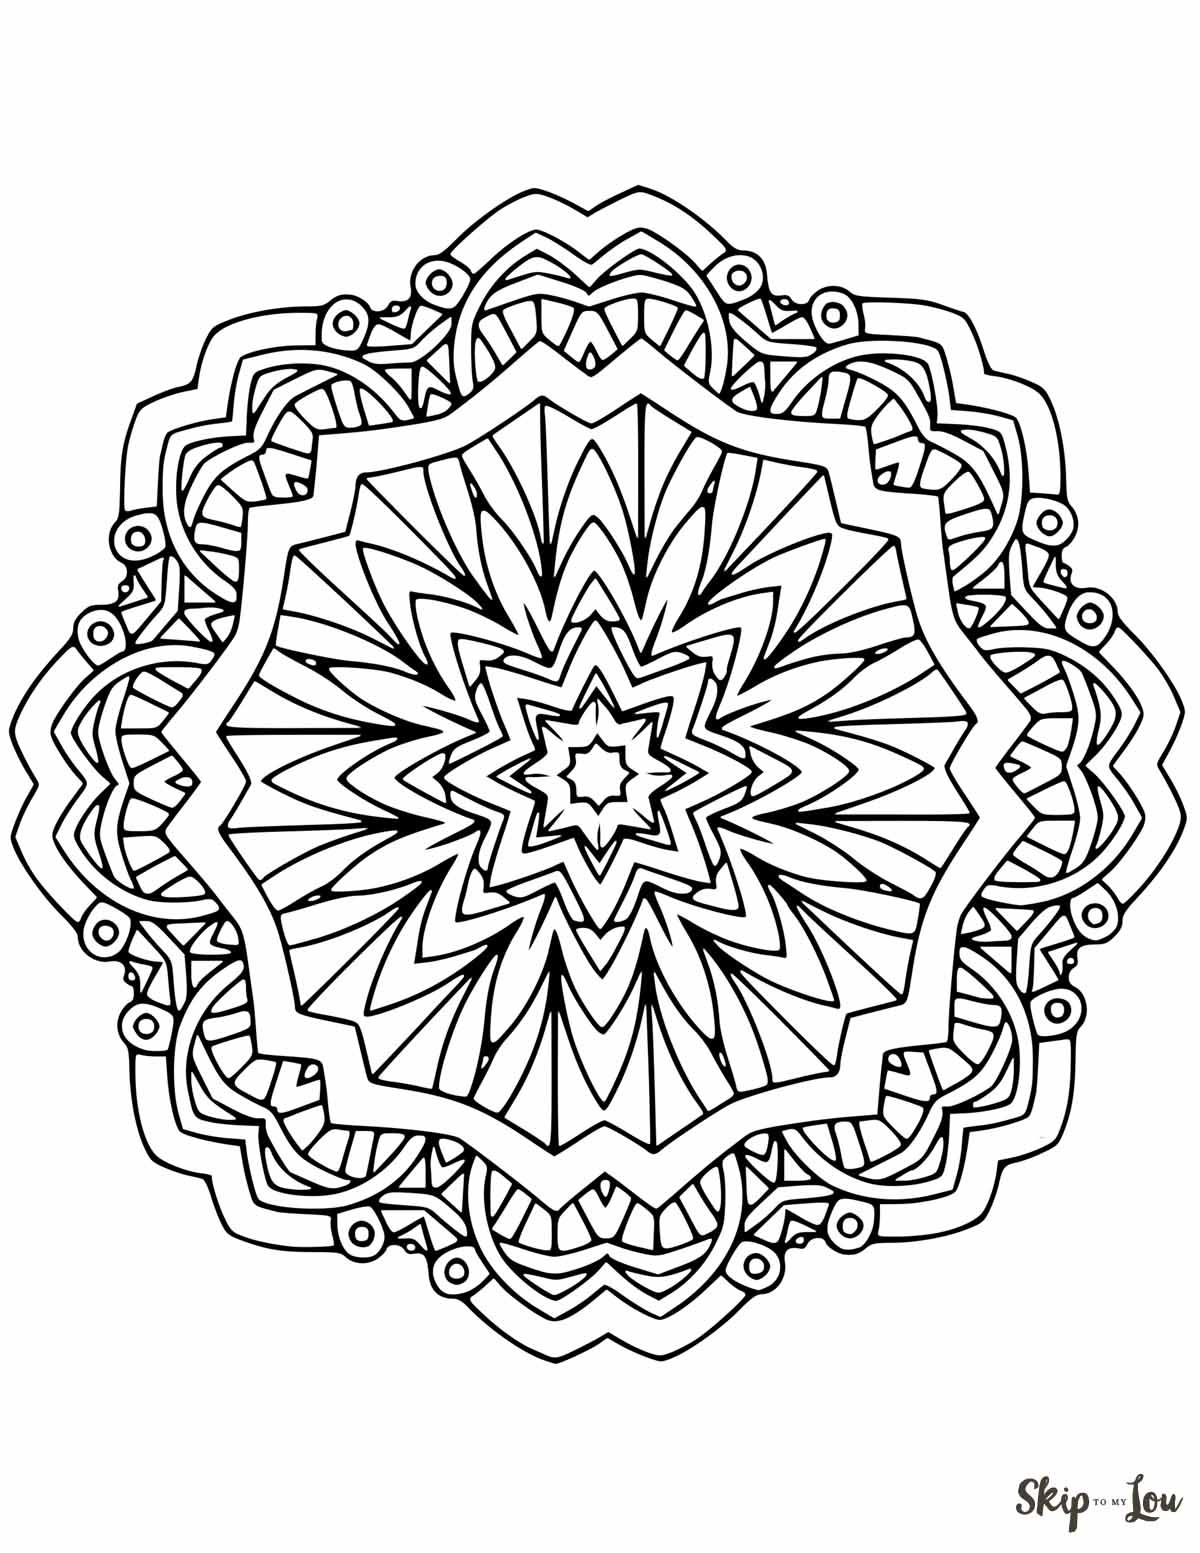 Mandala Coloring Pages can allow your mind to relax. All you need to ...